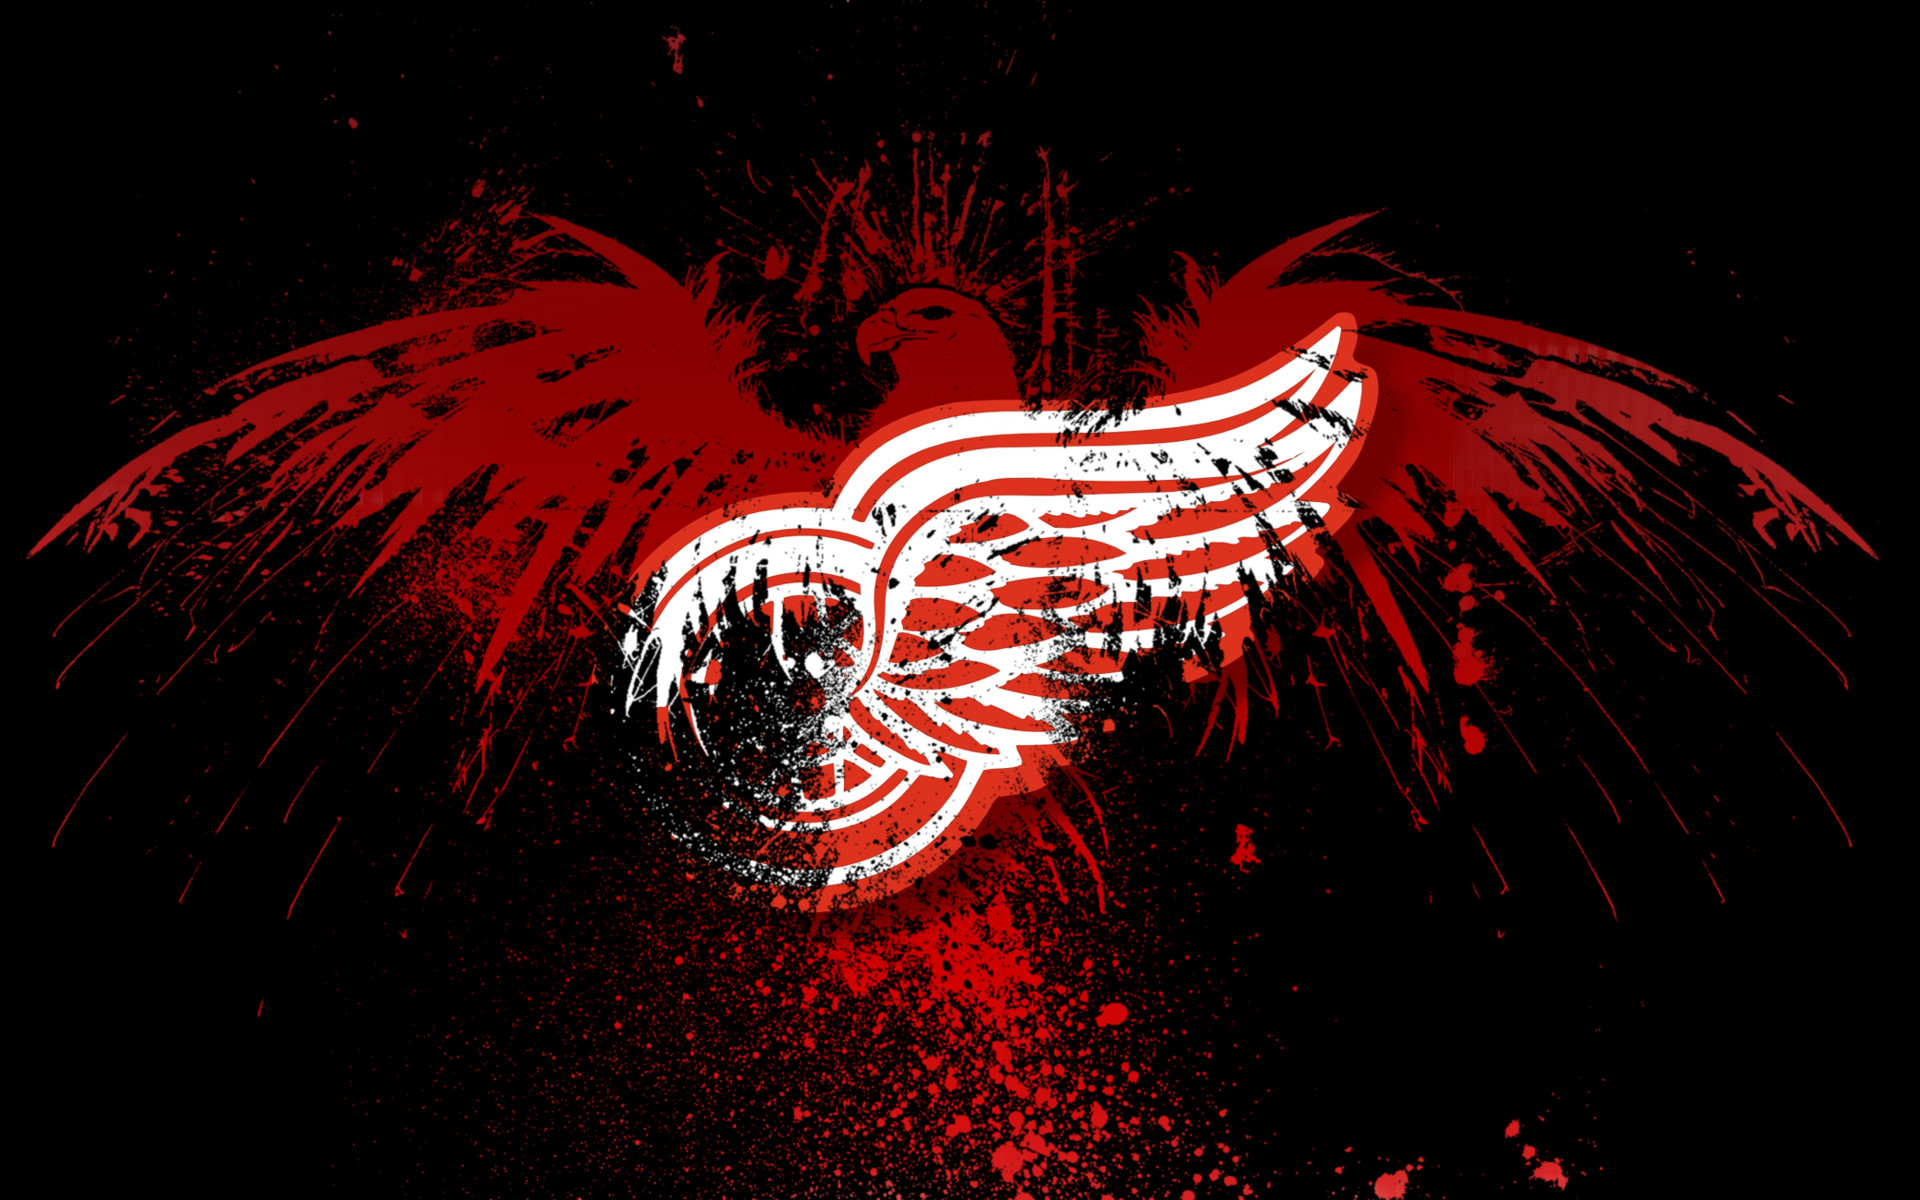 1920x1200 Detroit red wings wallpaper (4)